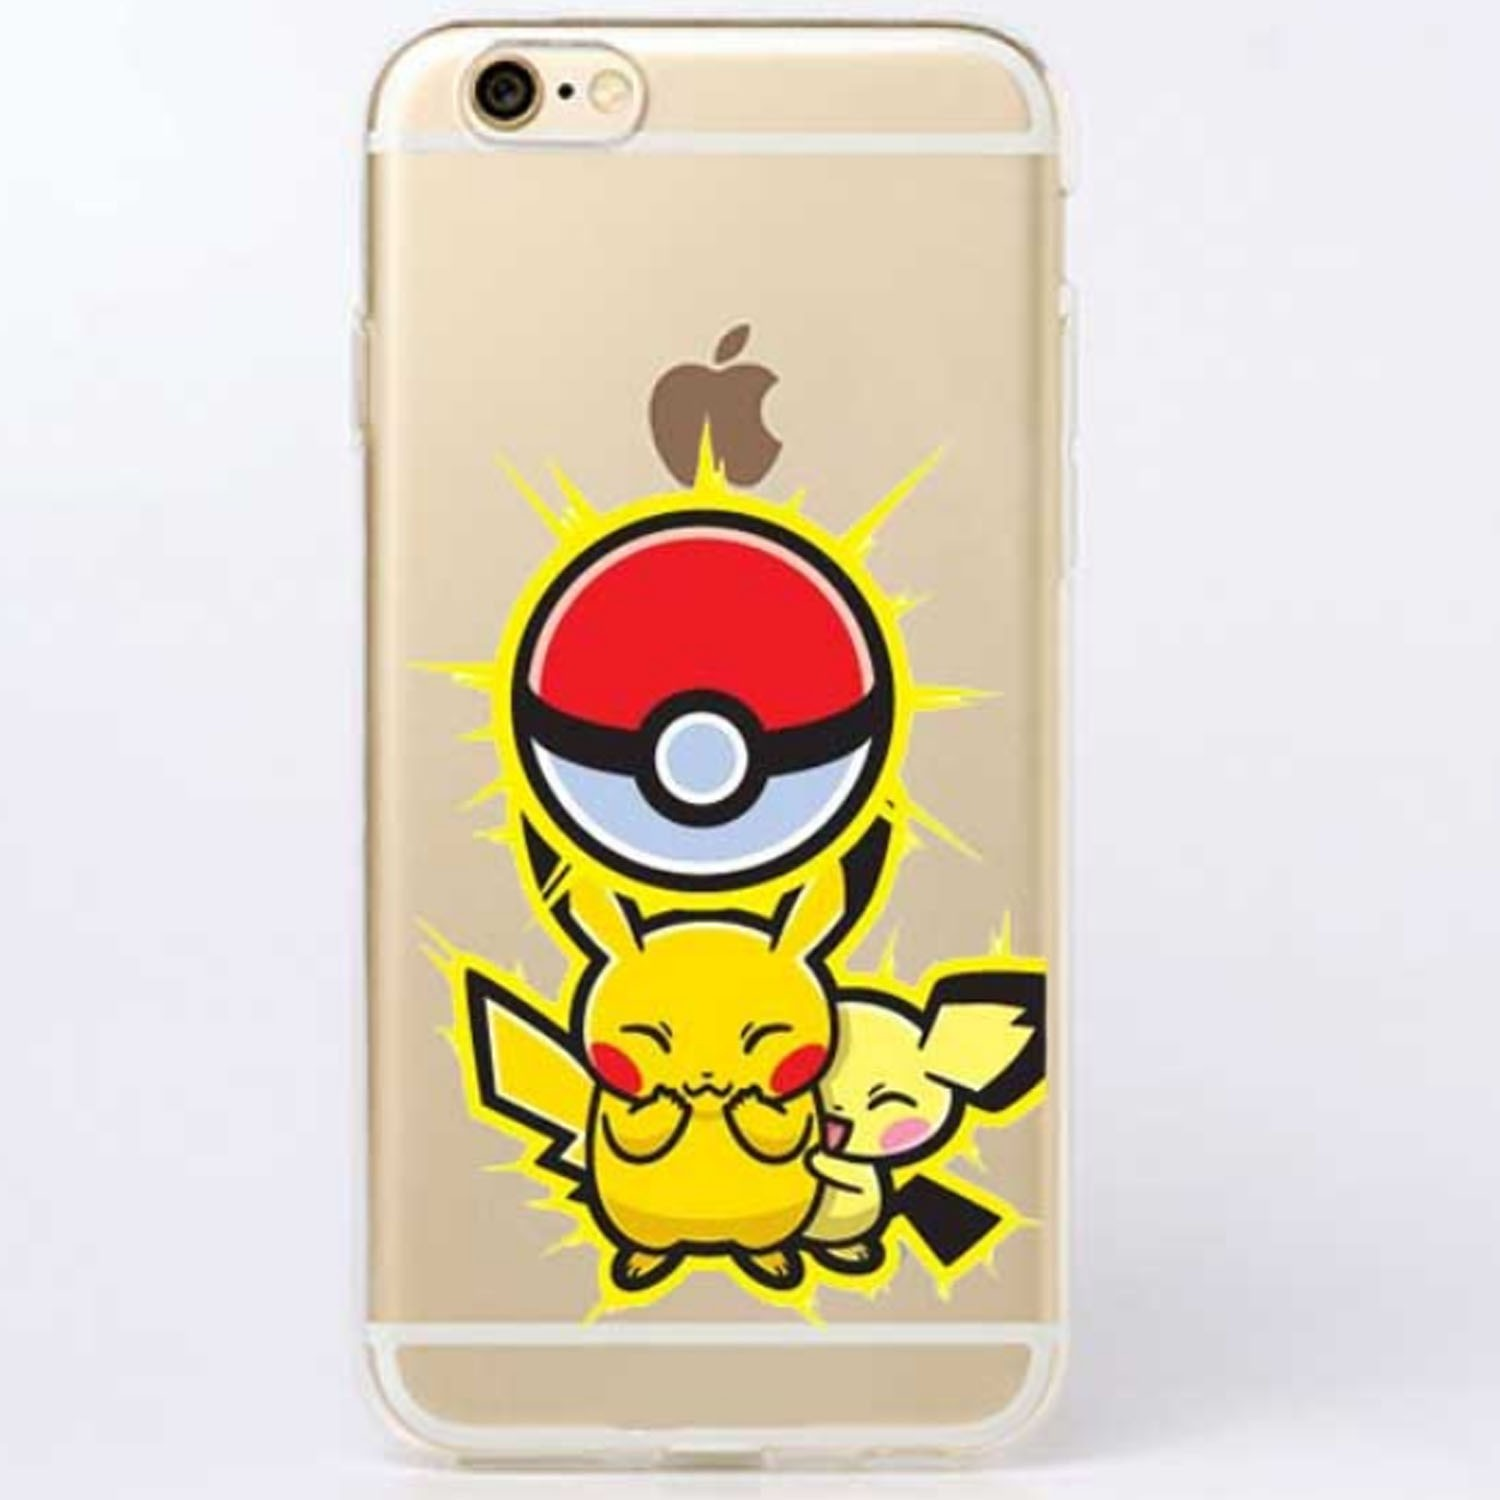 Kritzel Case iPhone 6 Plus / 6s Plus - Pokemon #12